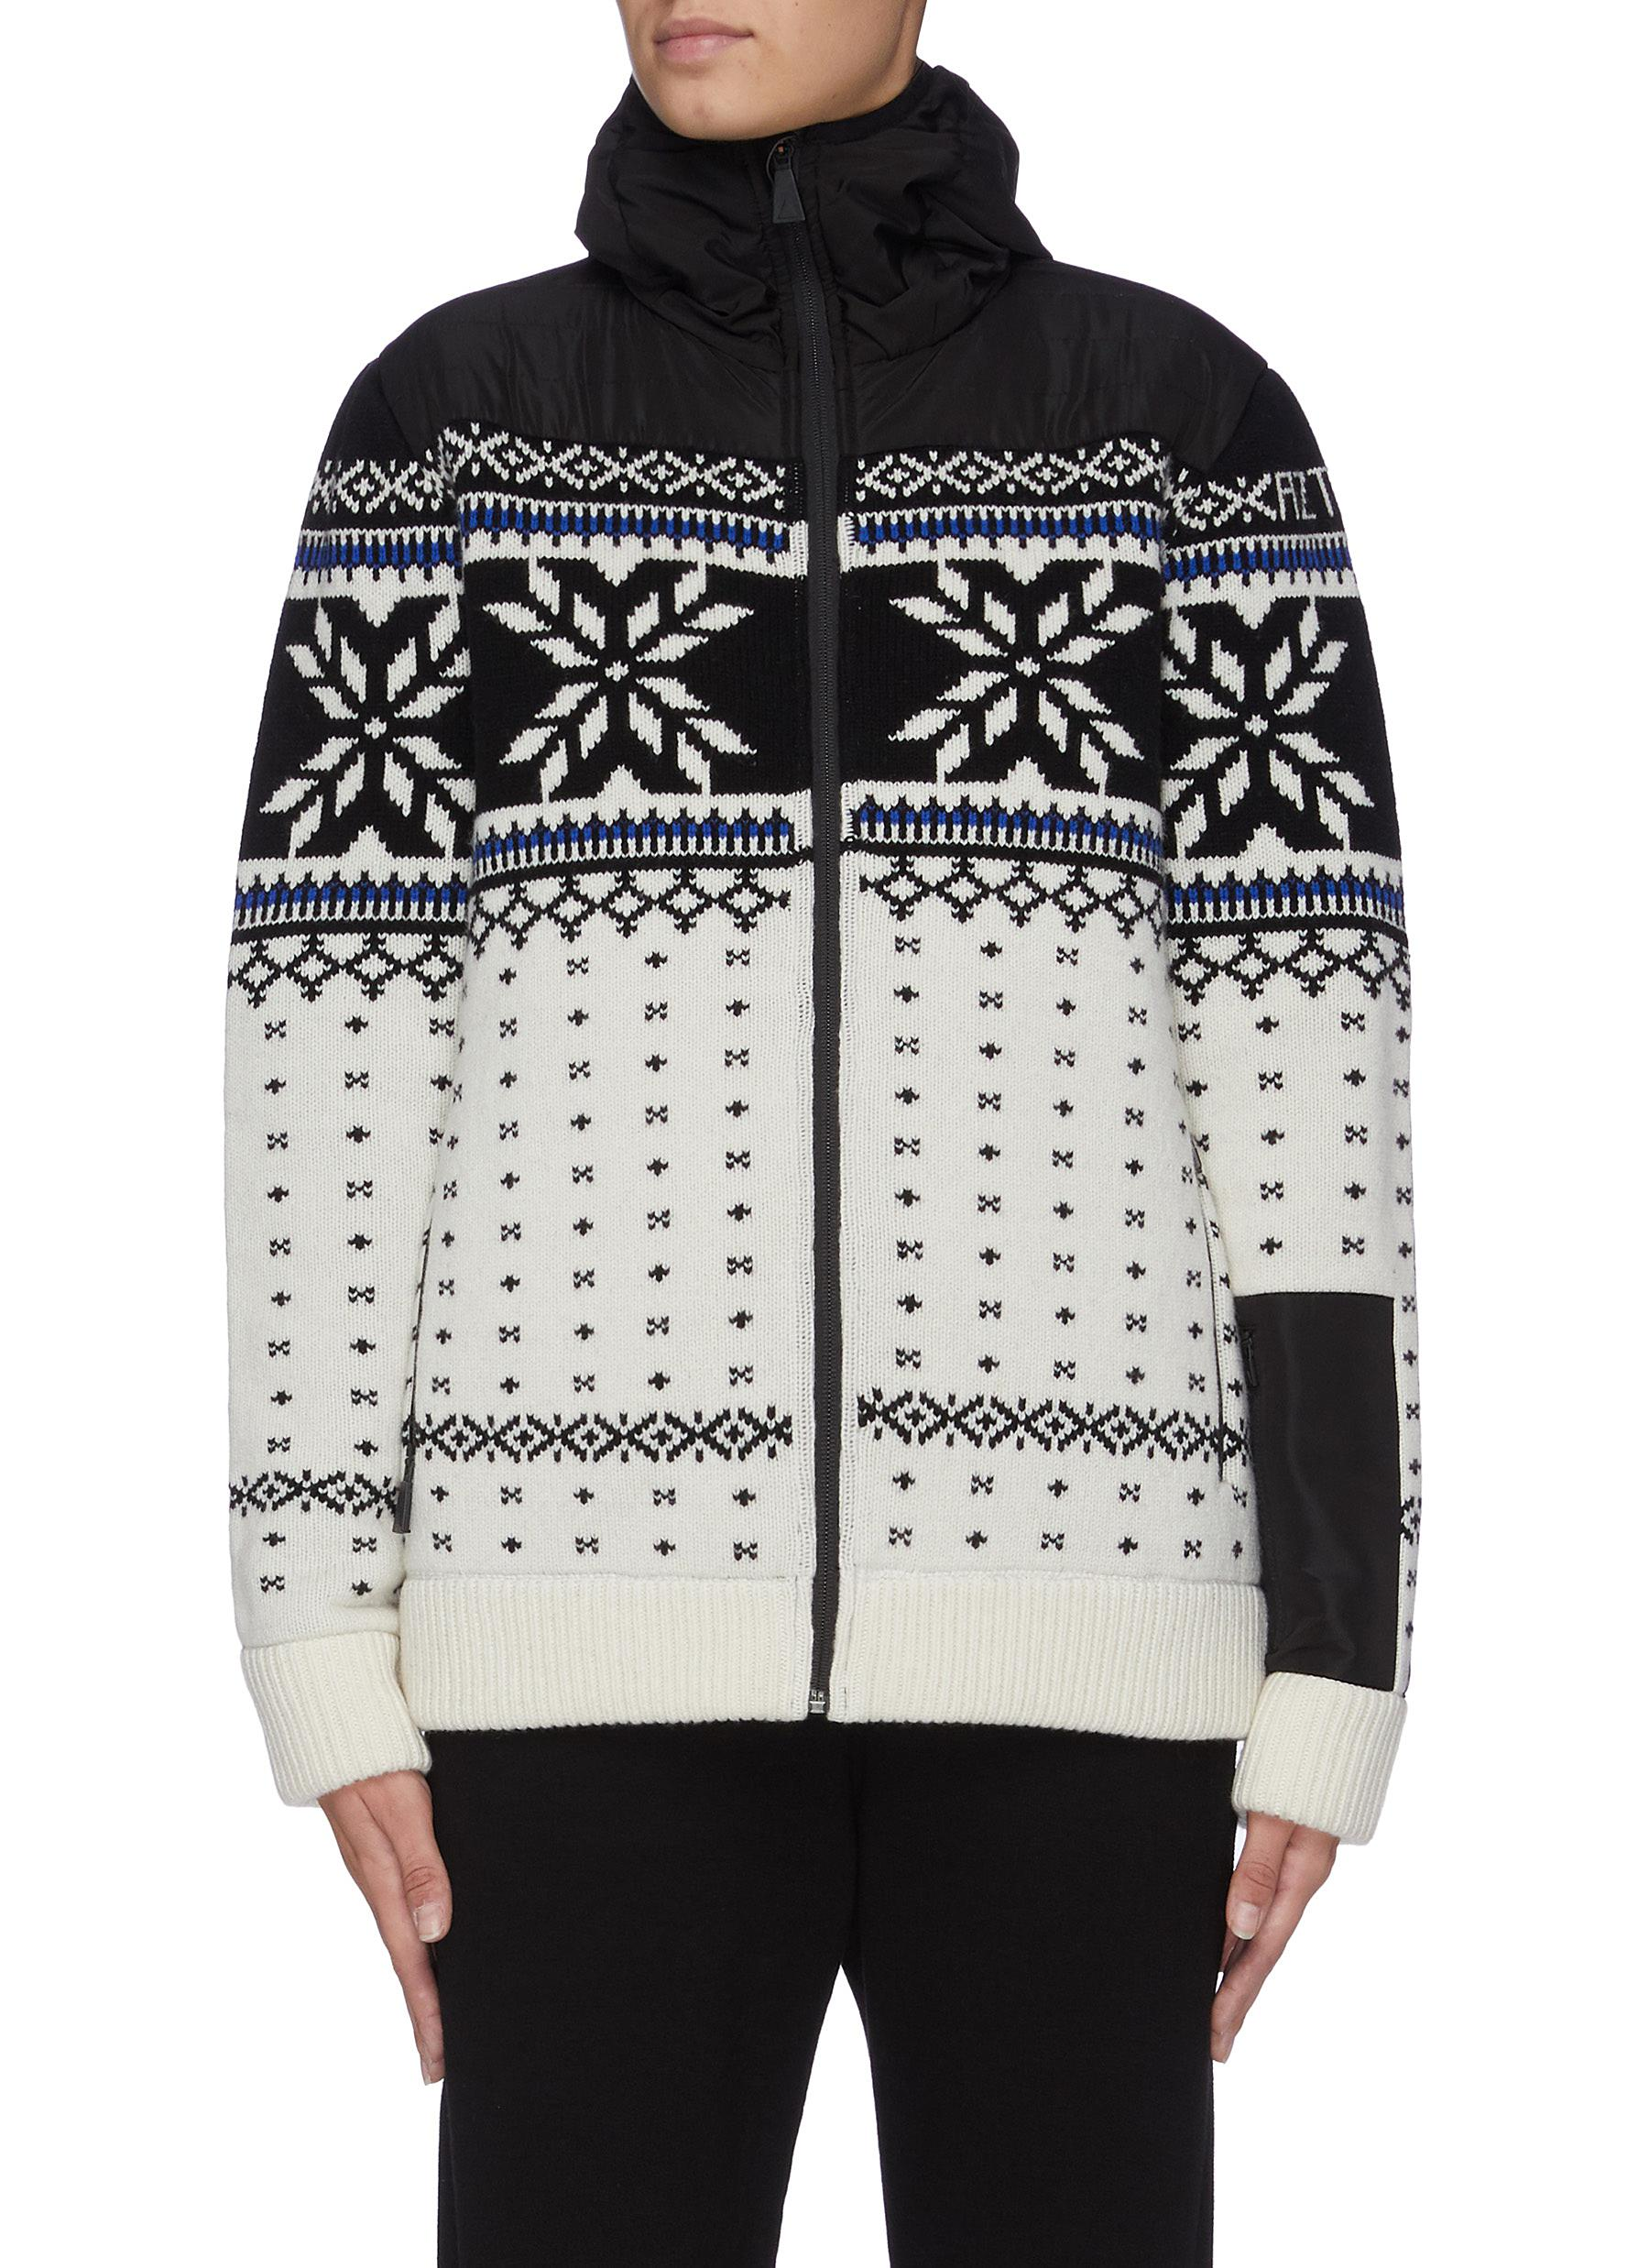 Buy Aztech Mountain Knitwear 'Aspen Flake' hooded sweater